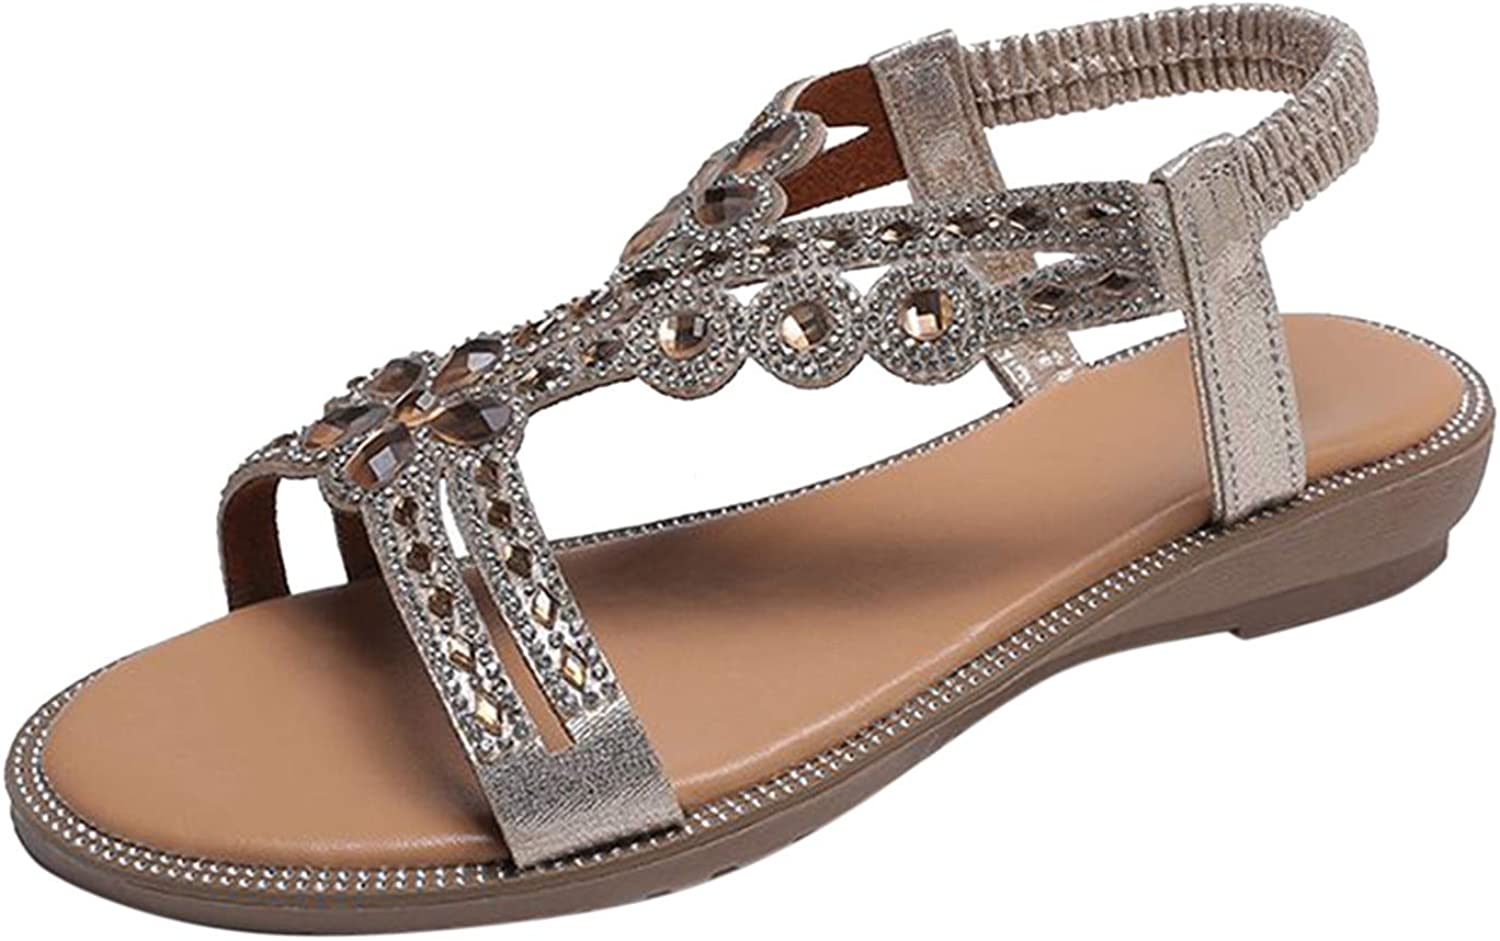 Nihewoo Sandals for Women Casual Max 58% OFF Comfort Summer Plus It is very popular Size Ladies